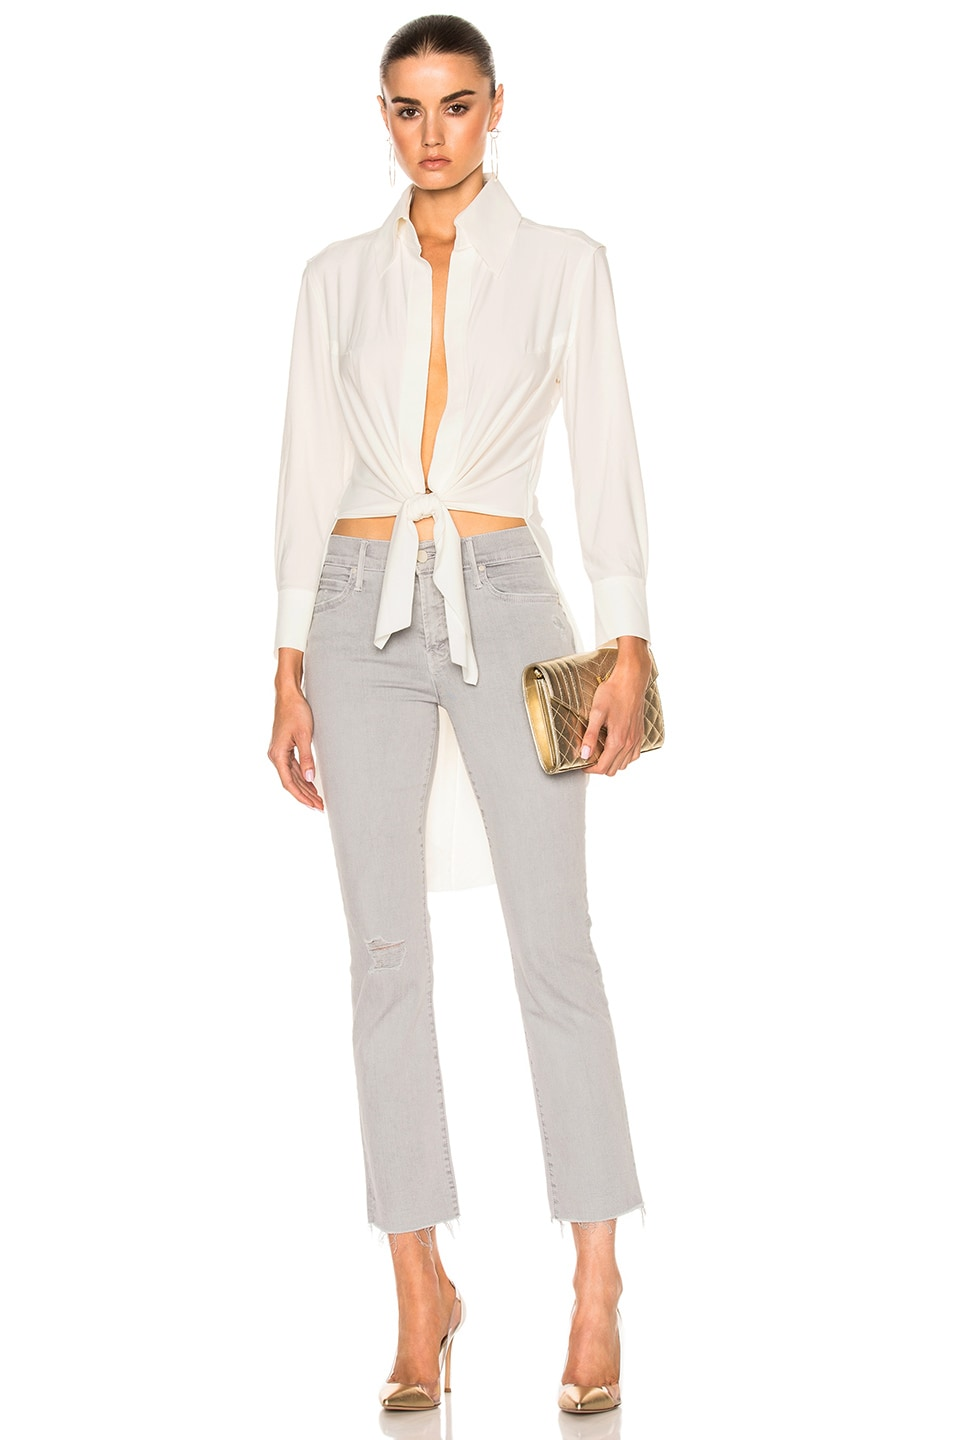 764ca81efa80 Image 1 of Norma Kamali Tie Front Shirt in Ivory